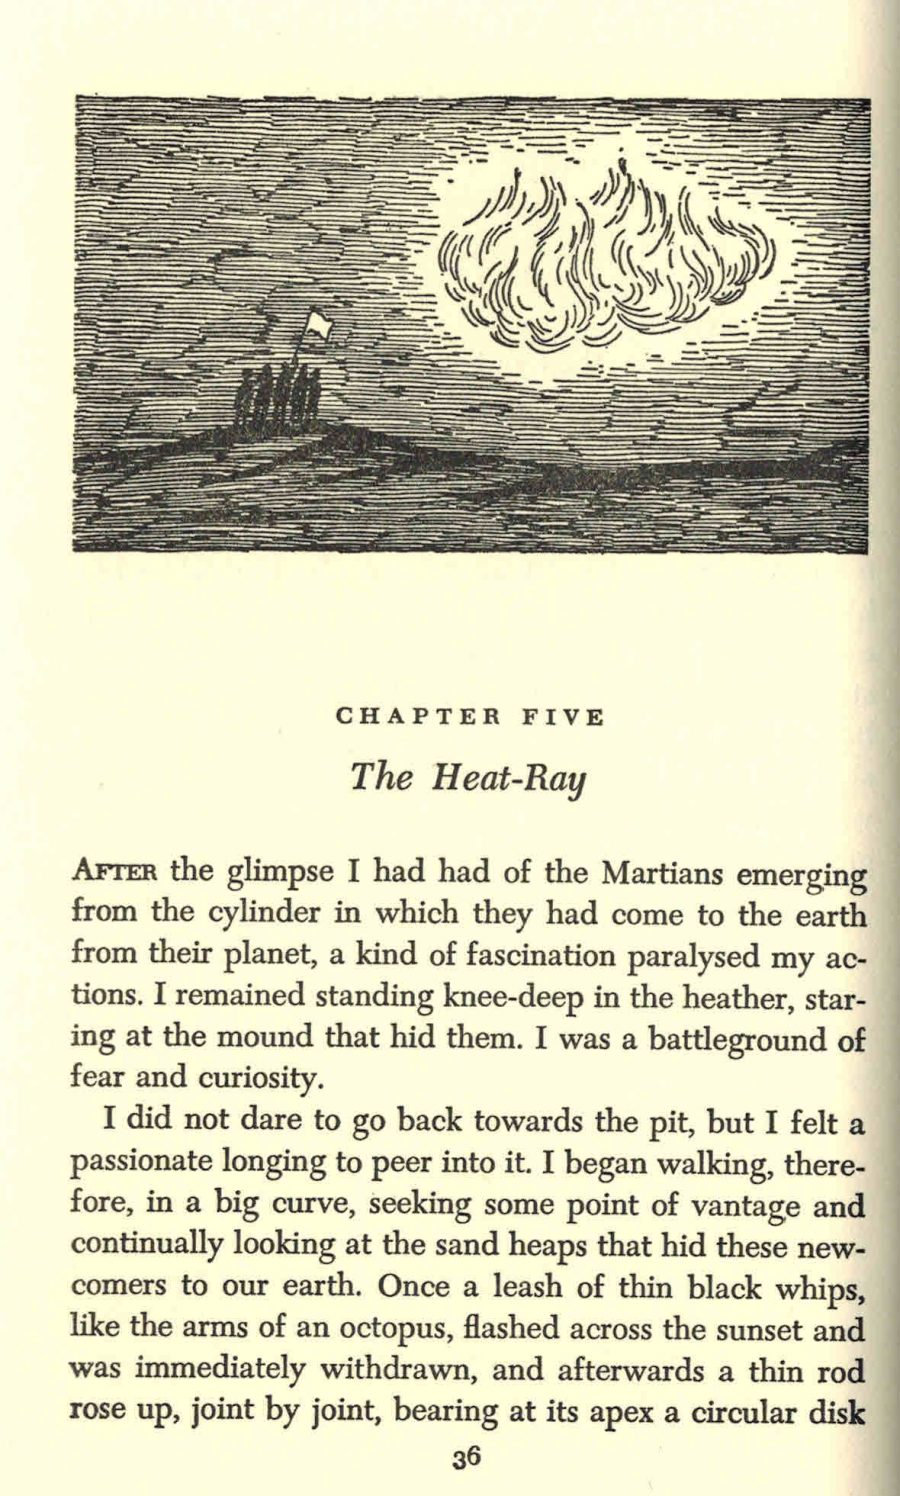 Edward Gorey Illustrates H.G. Wells' The War of the Worlds in His Inimitable Gothic Style (1960) Artes & contextos Wells2 e1494910071409